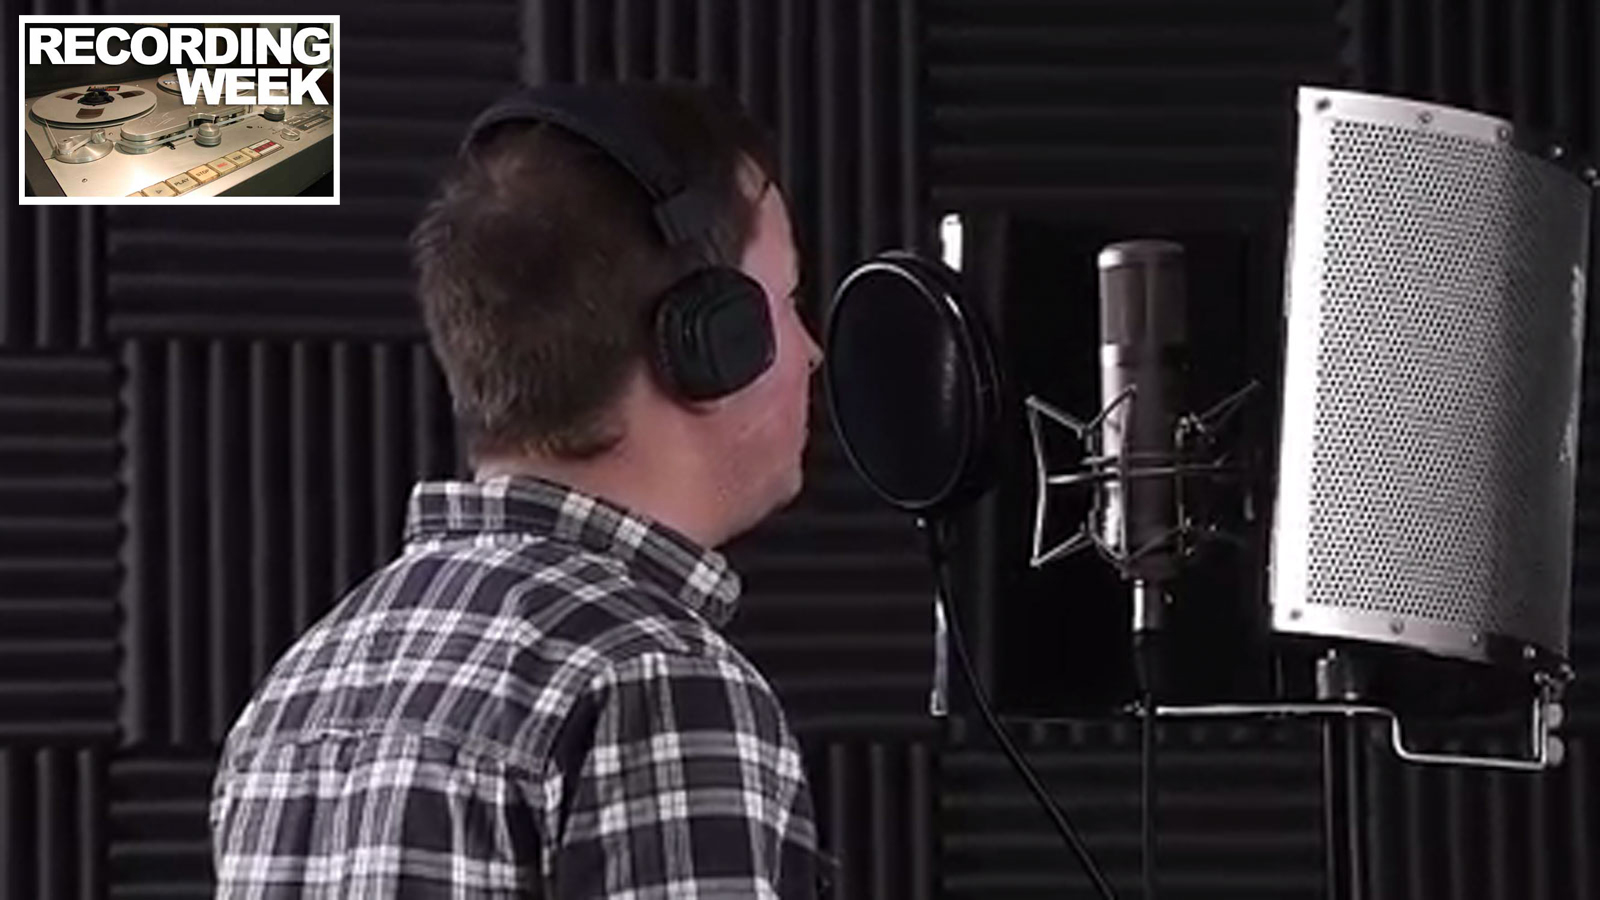 6 easy steps to making a great vocal recording